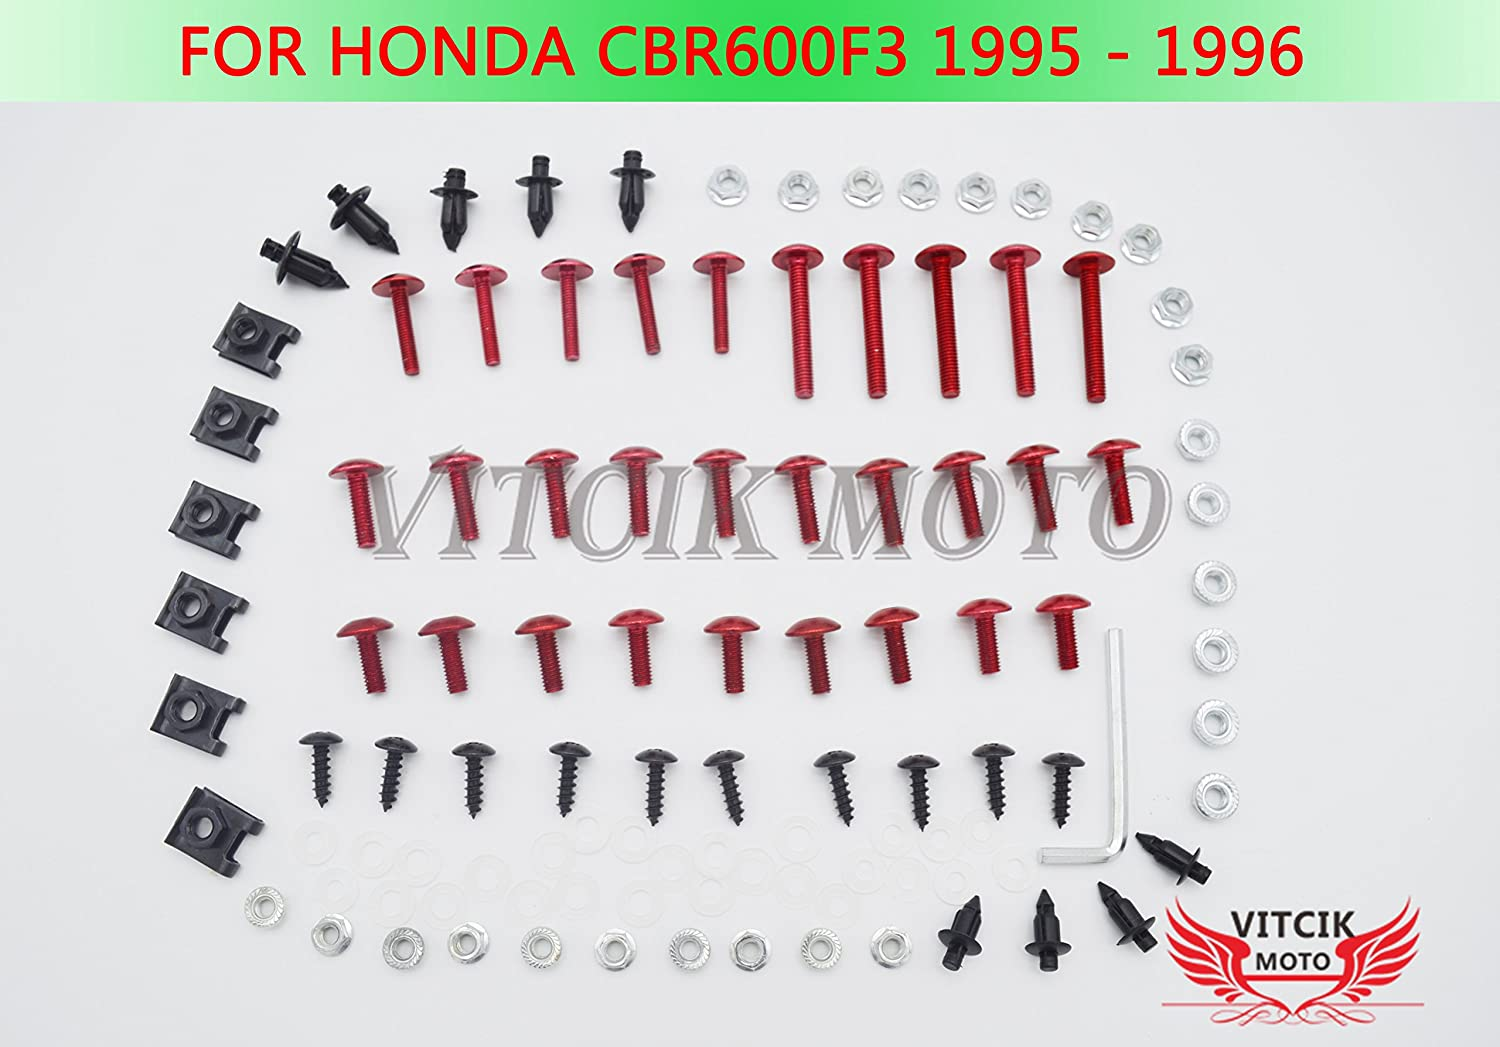 GHMotor 1993 1994 1995 1996 1997 1998 1999 2000 2001 2002 2003 DUCATI 748 916 996 998 BOLTS and WASHERS Fairing Bolts Fasteners Screws Kit Set MADE IN USA All Black